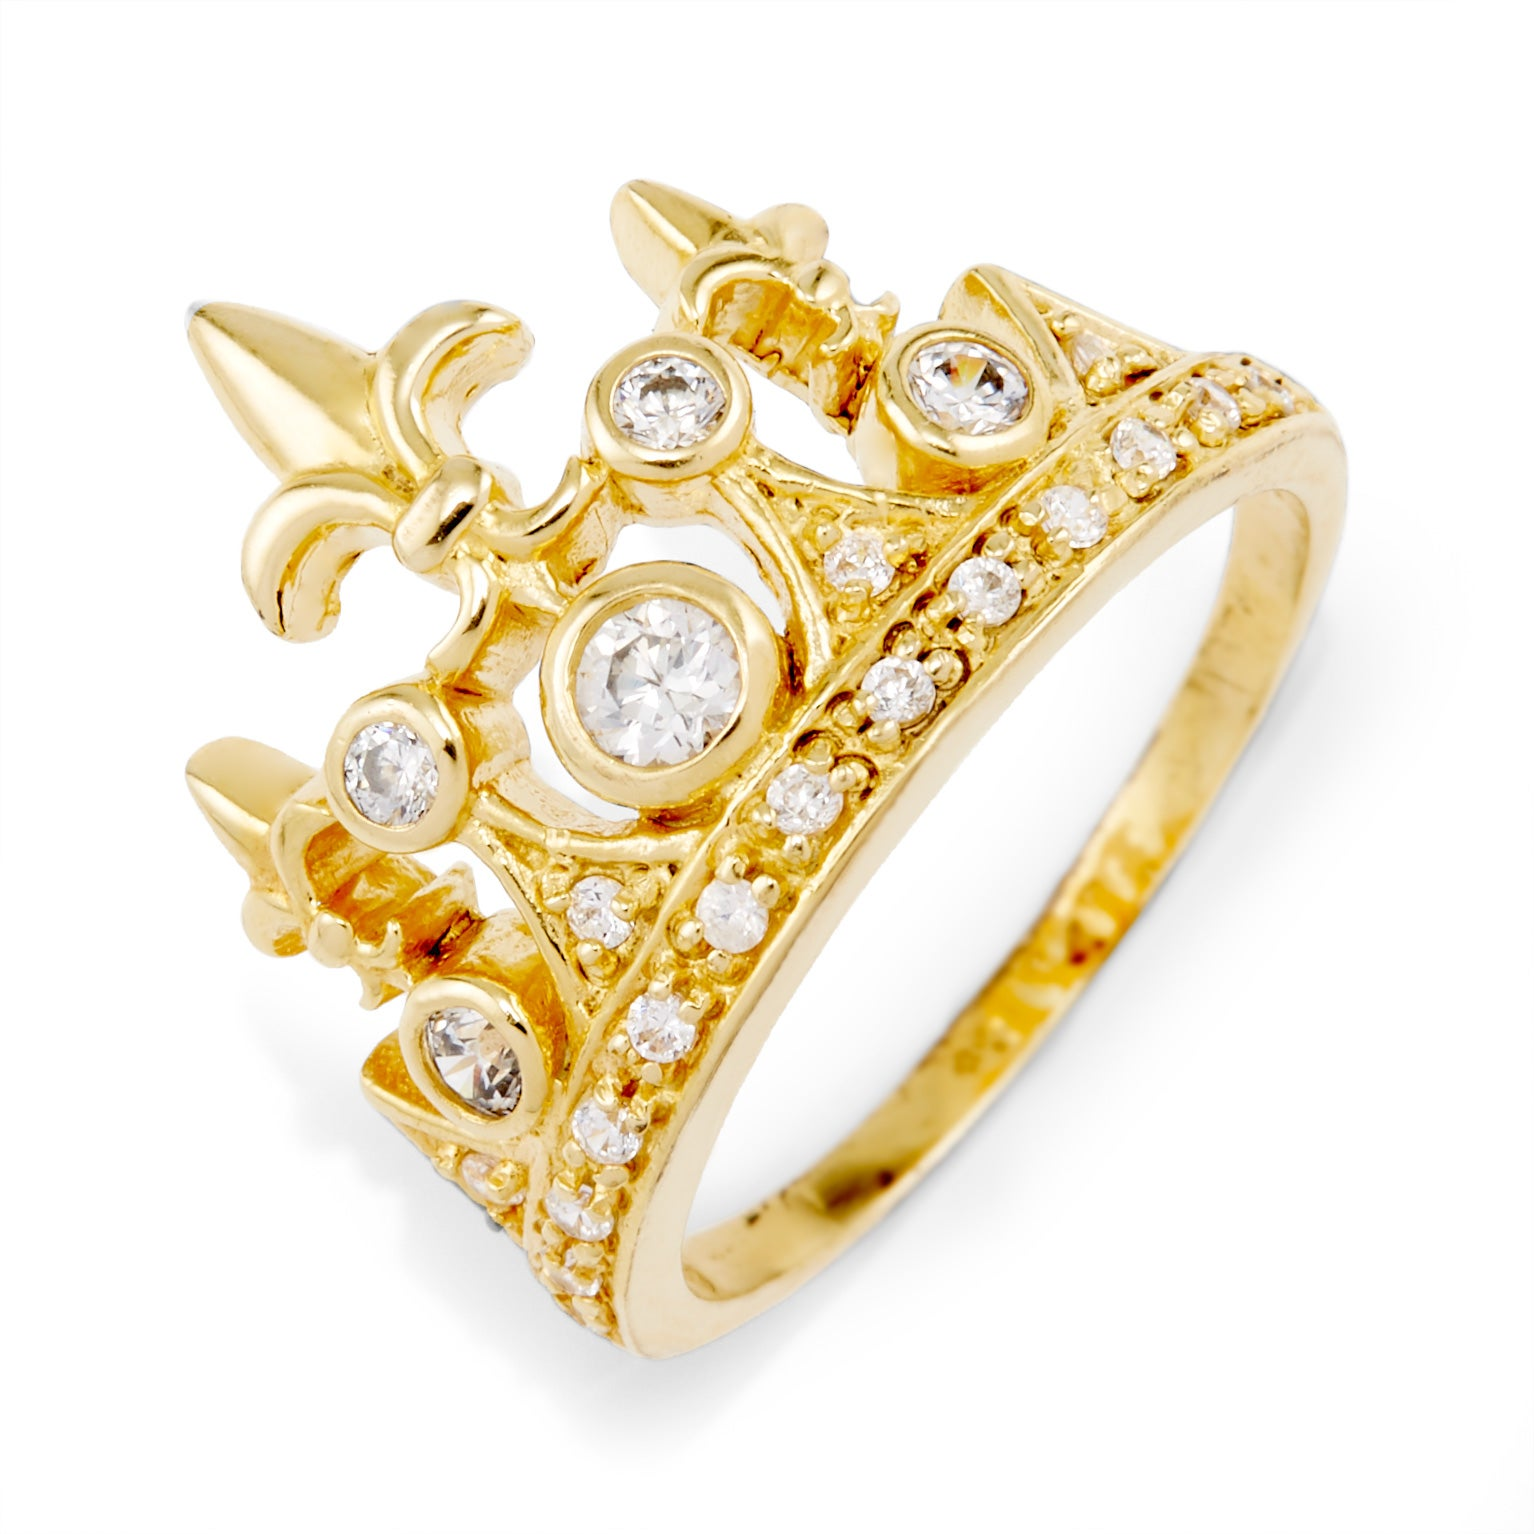 Crown Rings For Sale